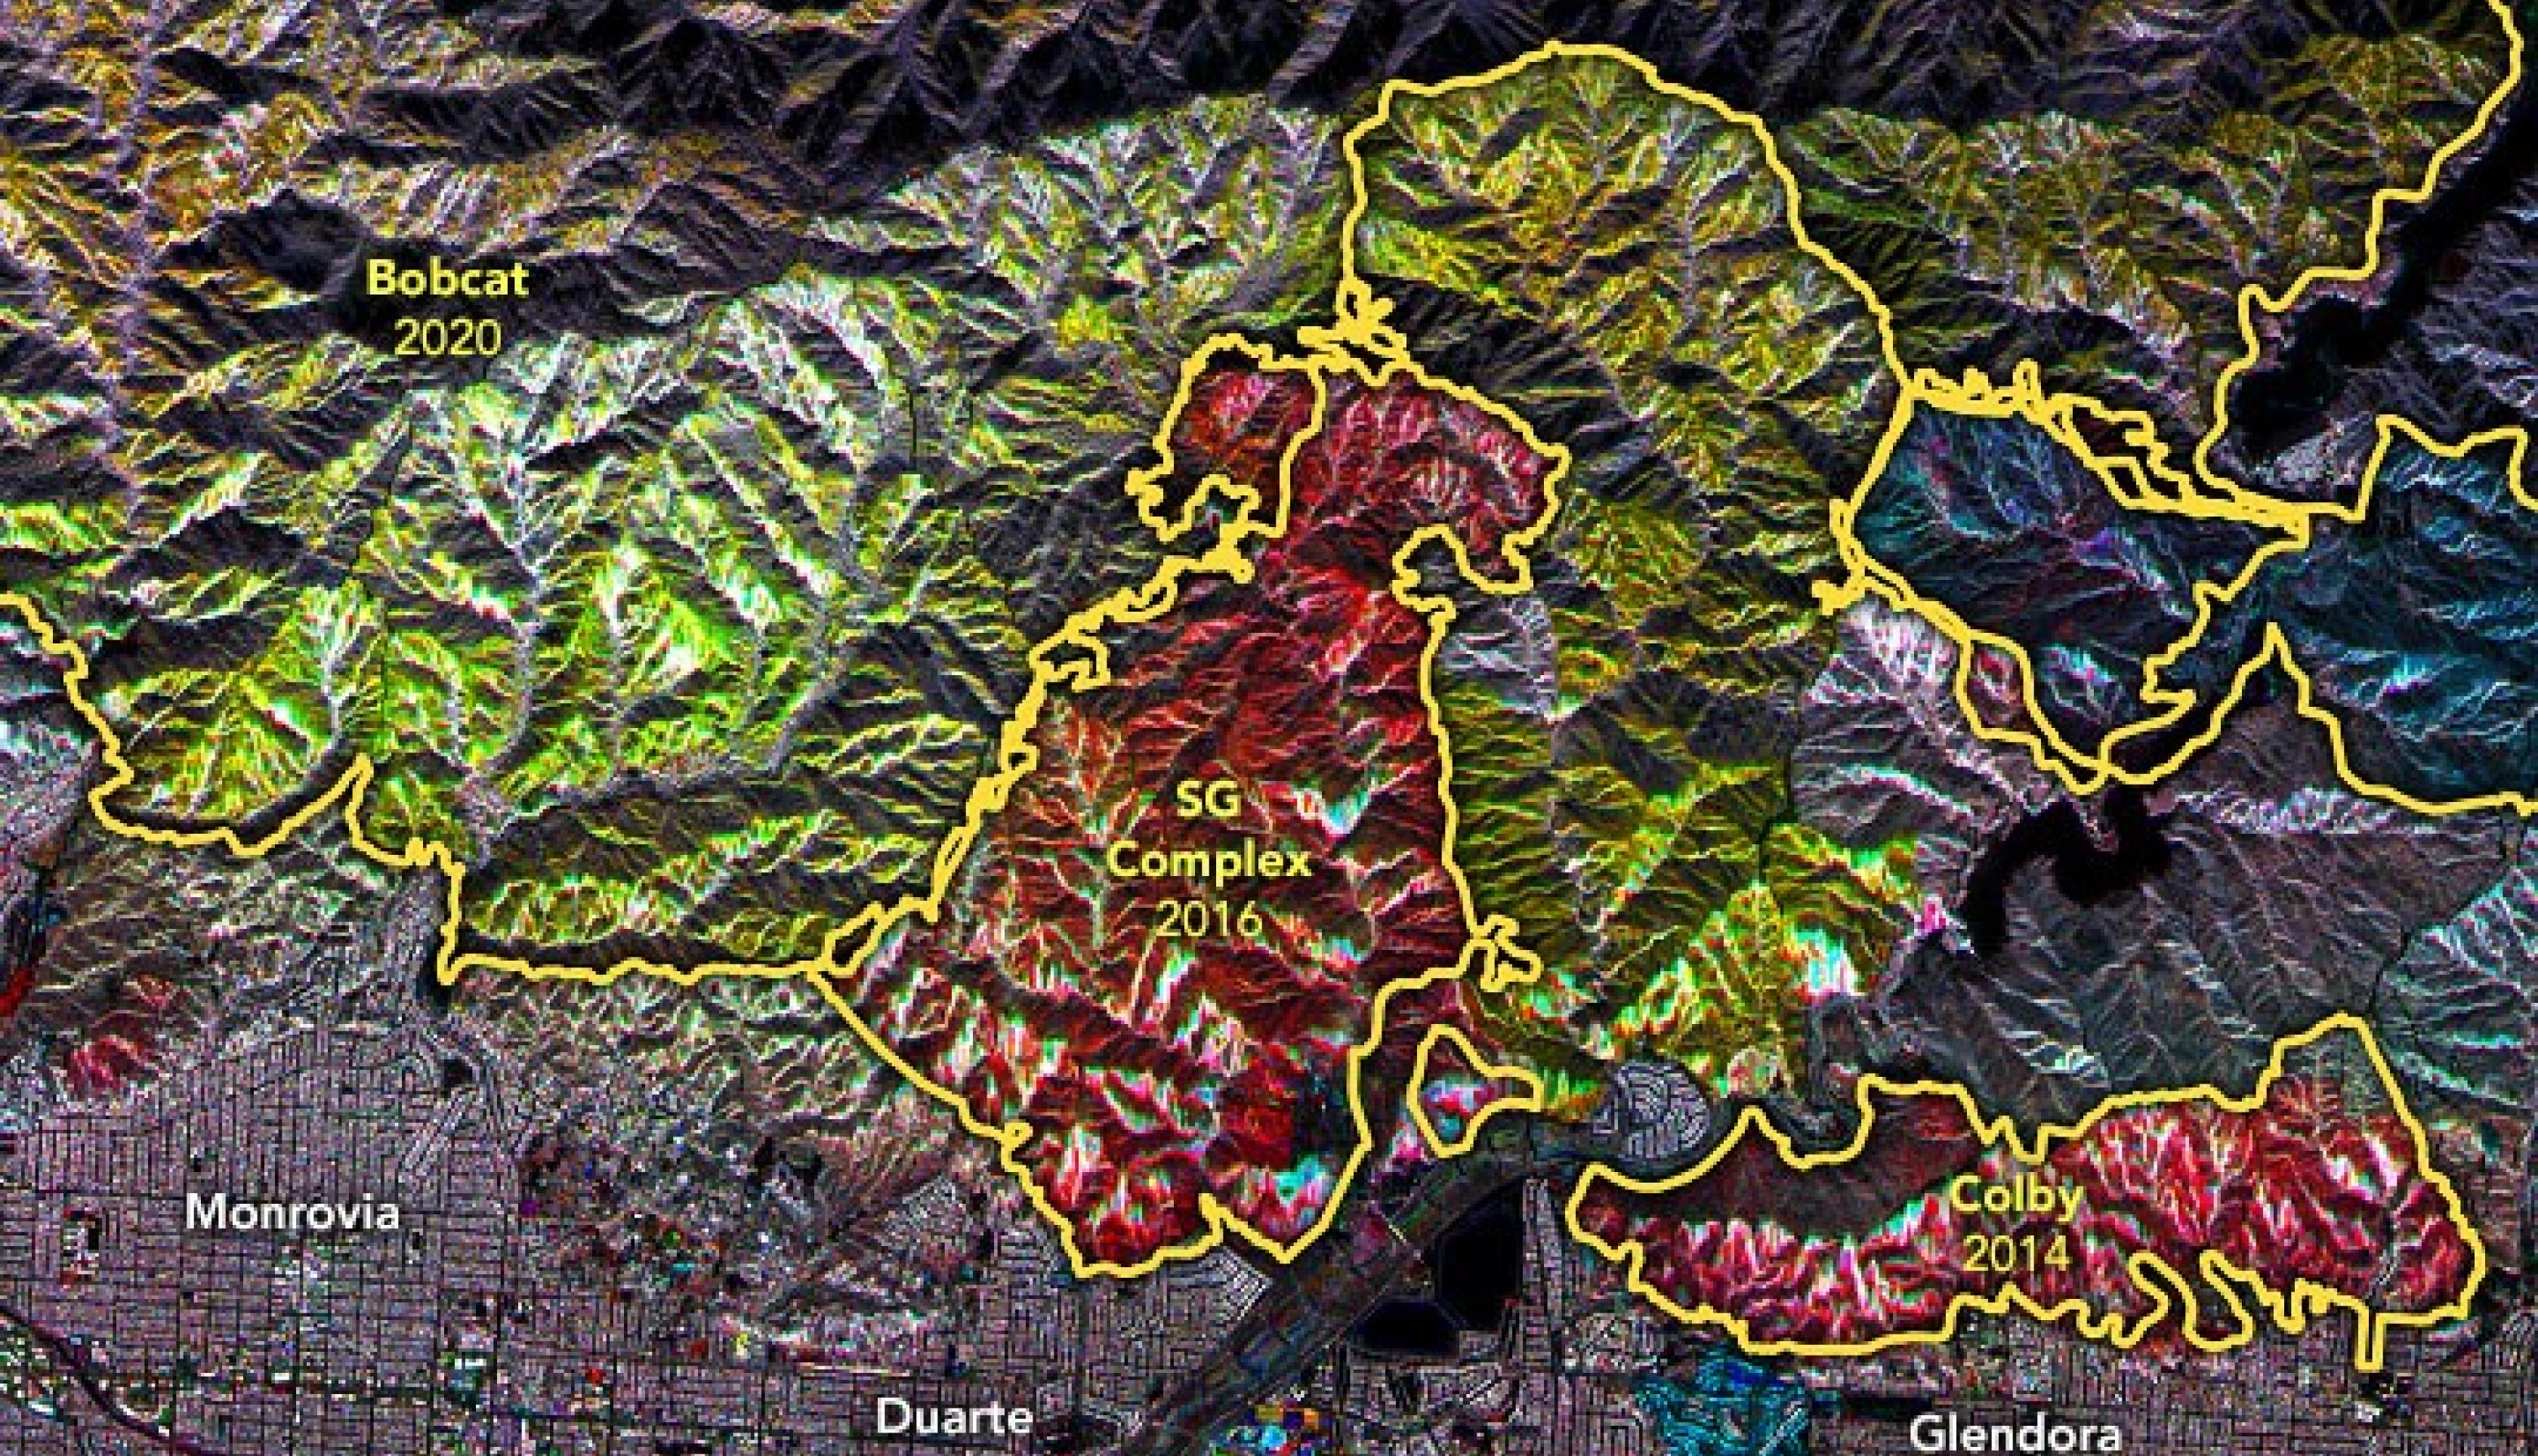 A mosaic of SAR data showing forest fire damage and regrowth over time from various major fire complexes in California. Credits: NASA Earth Observatory